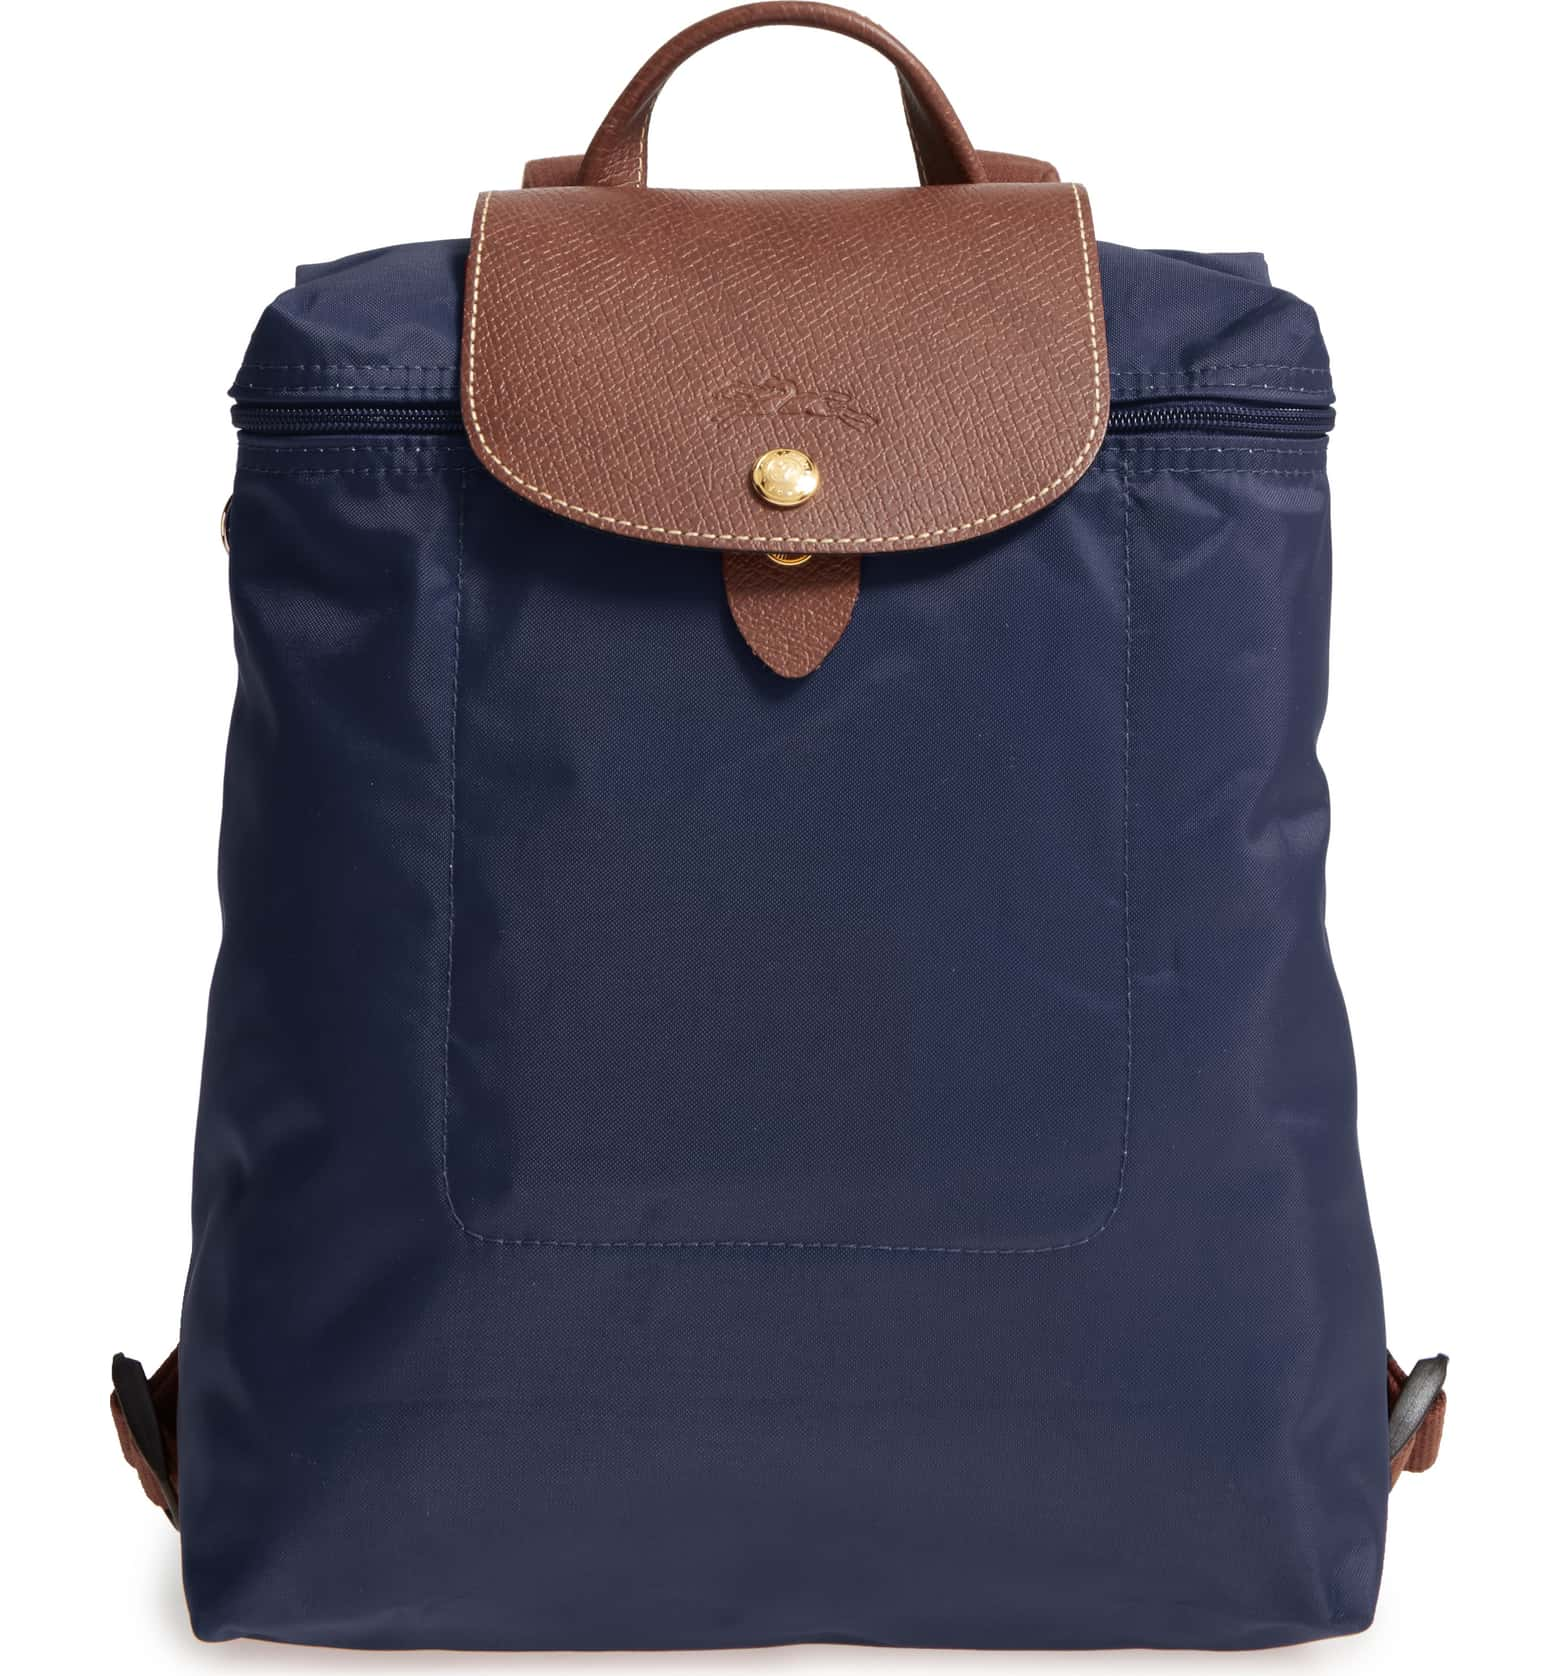 10. Backpack - Longchamp Le Pliage Backpack